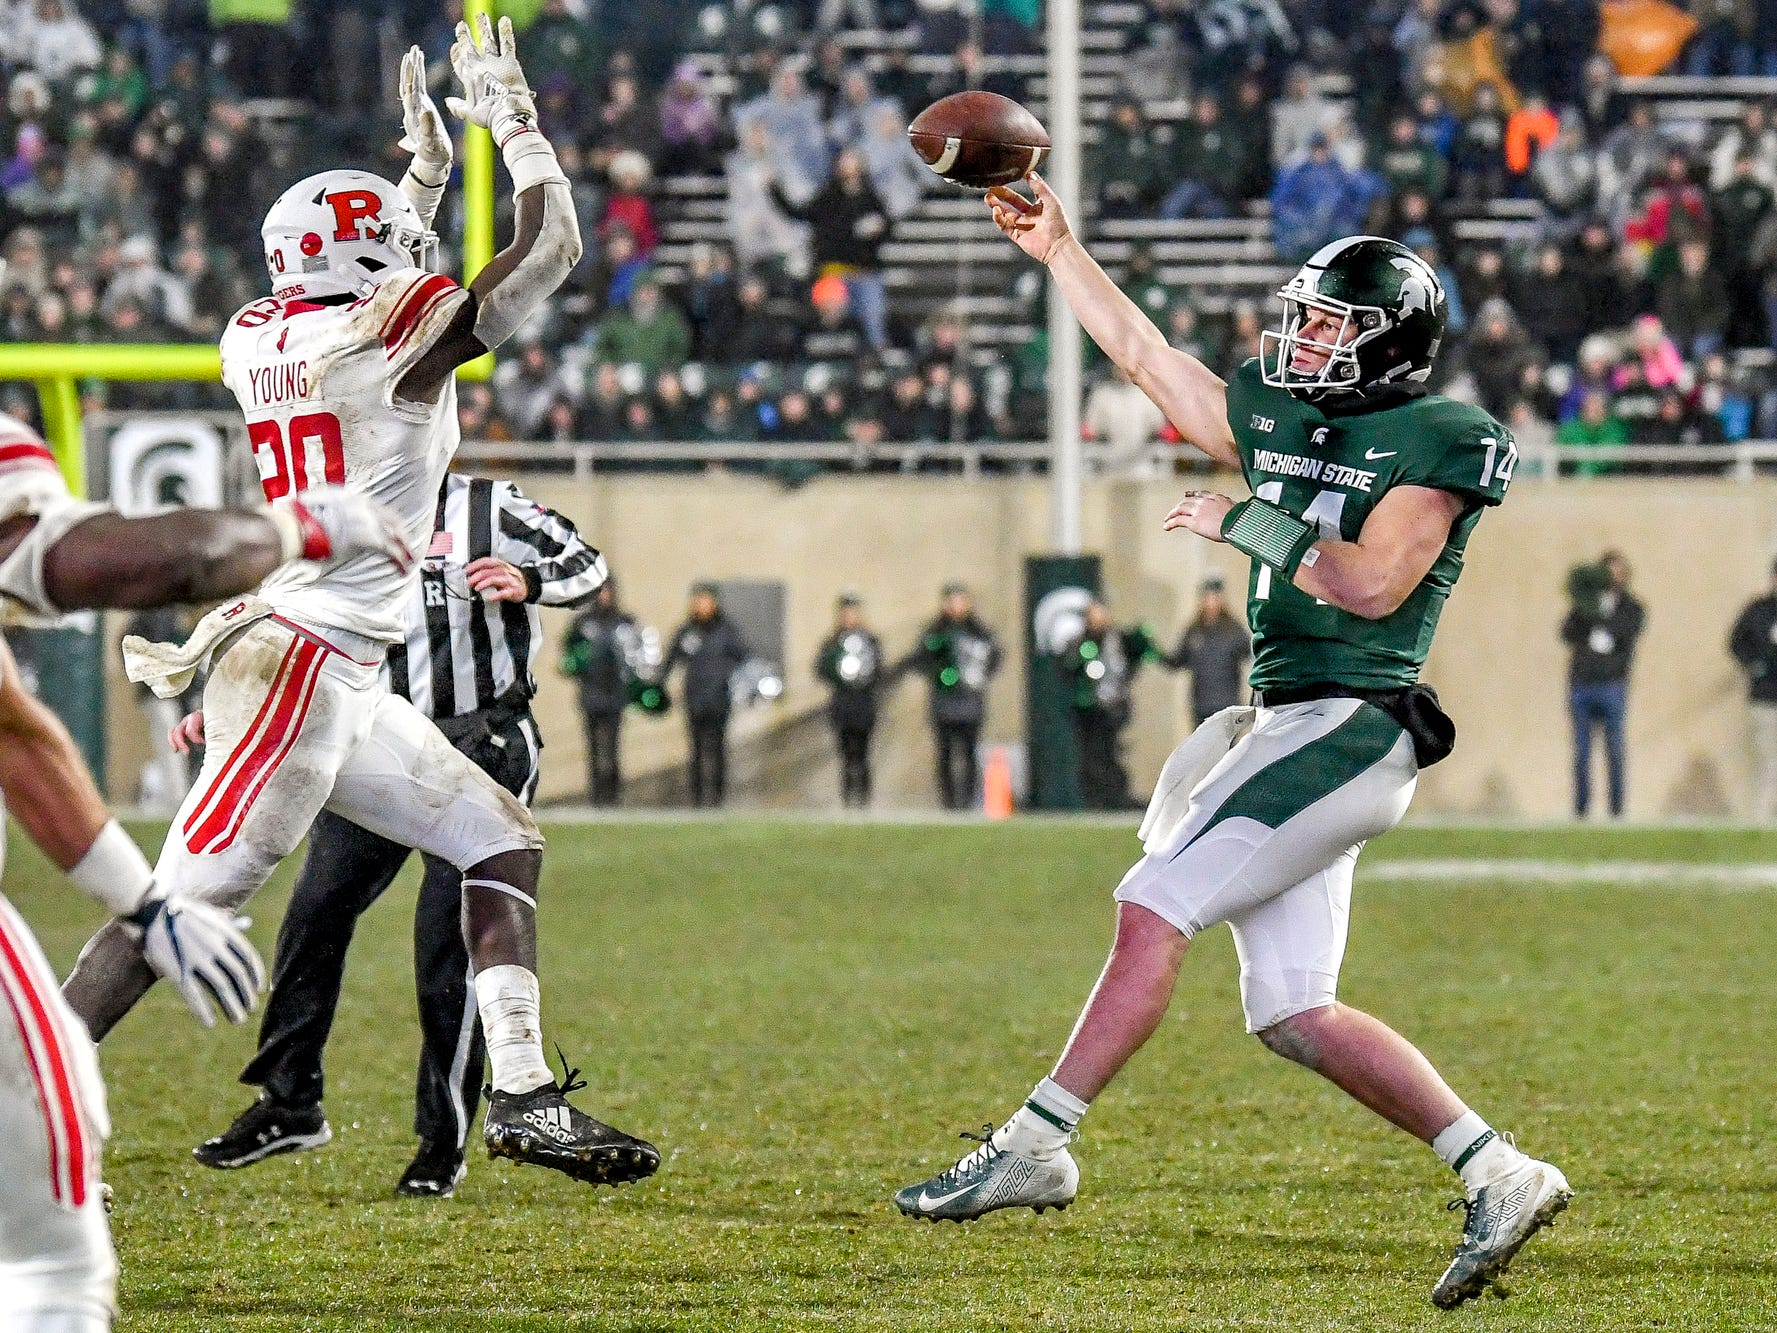 Michigan State's Brian Lewerke throws a pass on a fake field goal attempt during the second quarter on Saturday, Nov. 24, 2018, at Spartan Stadium in East Lansing. The pass was intercepted.